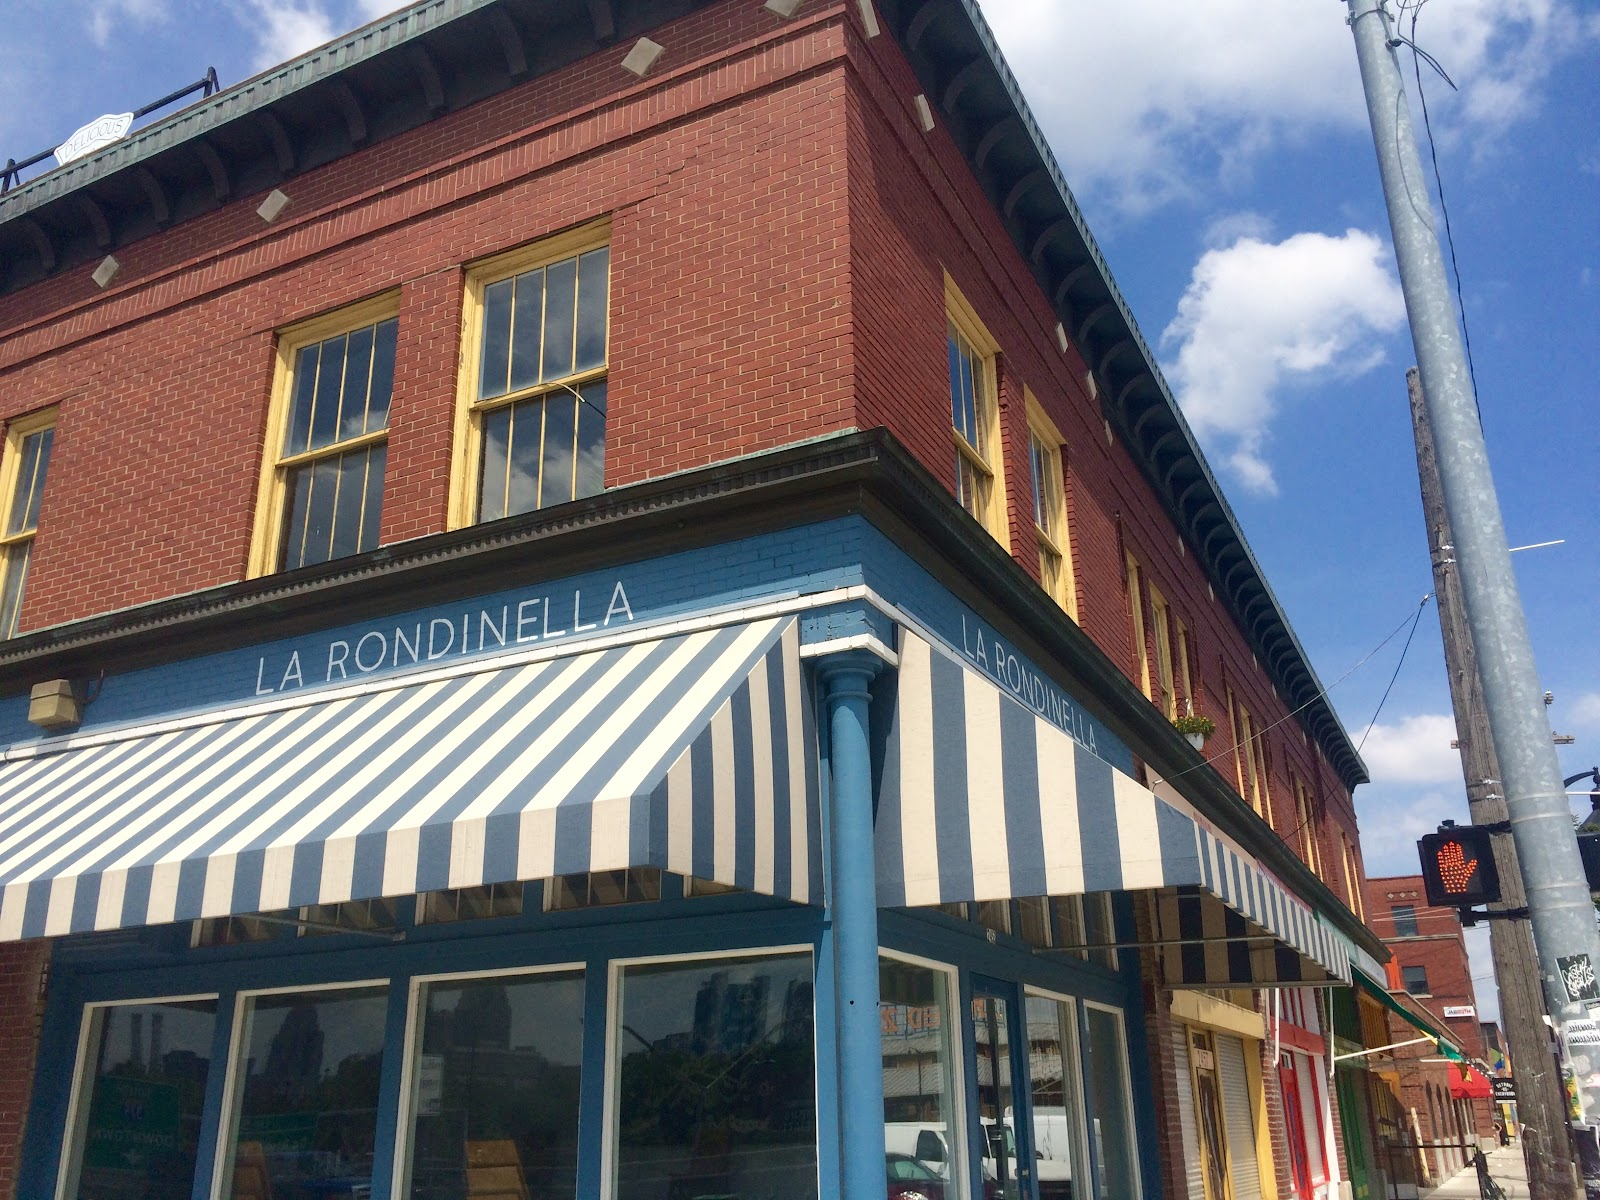 La Rondinella is new to the Eastern Market team, but is already wowing people with an excellent food and wine menu joined by a superb lineup of craft drinks